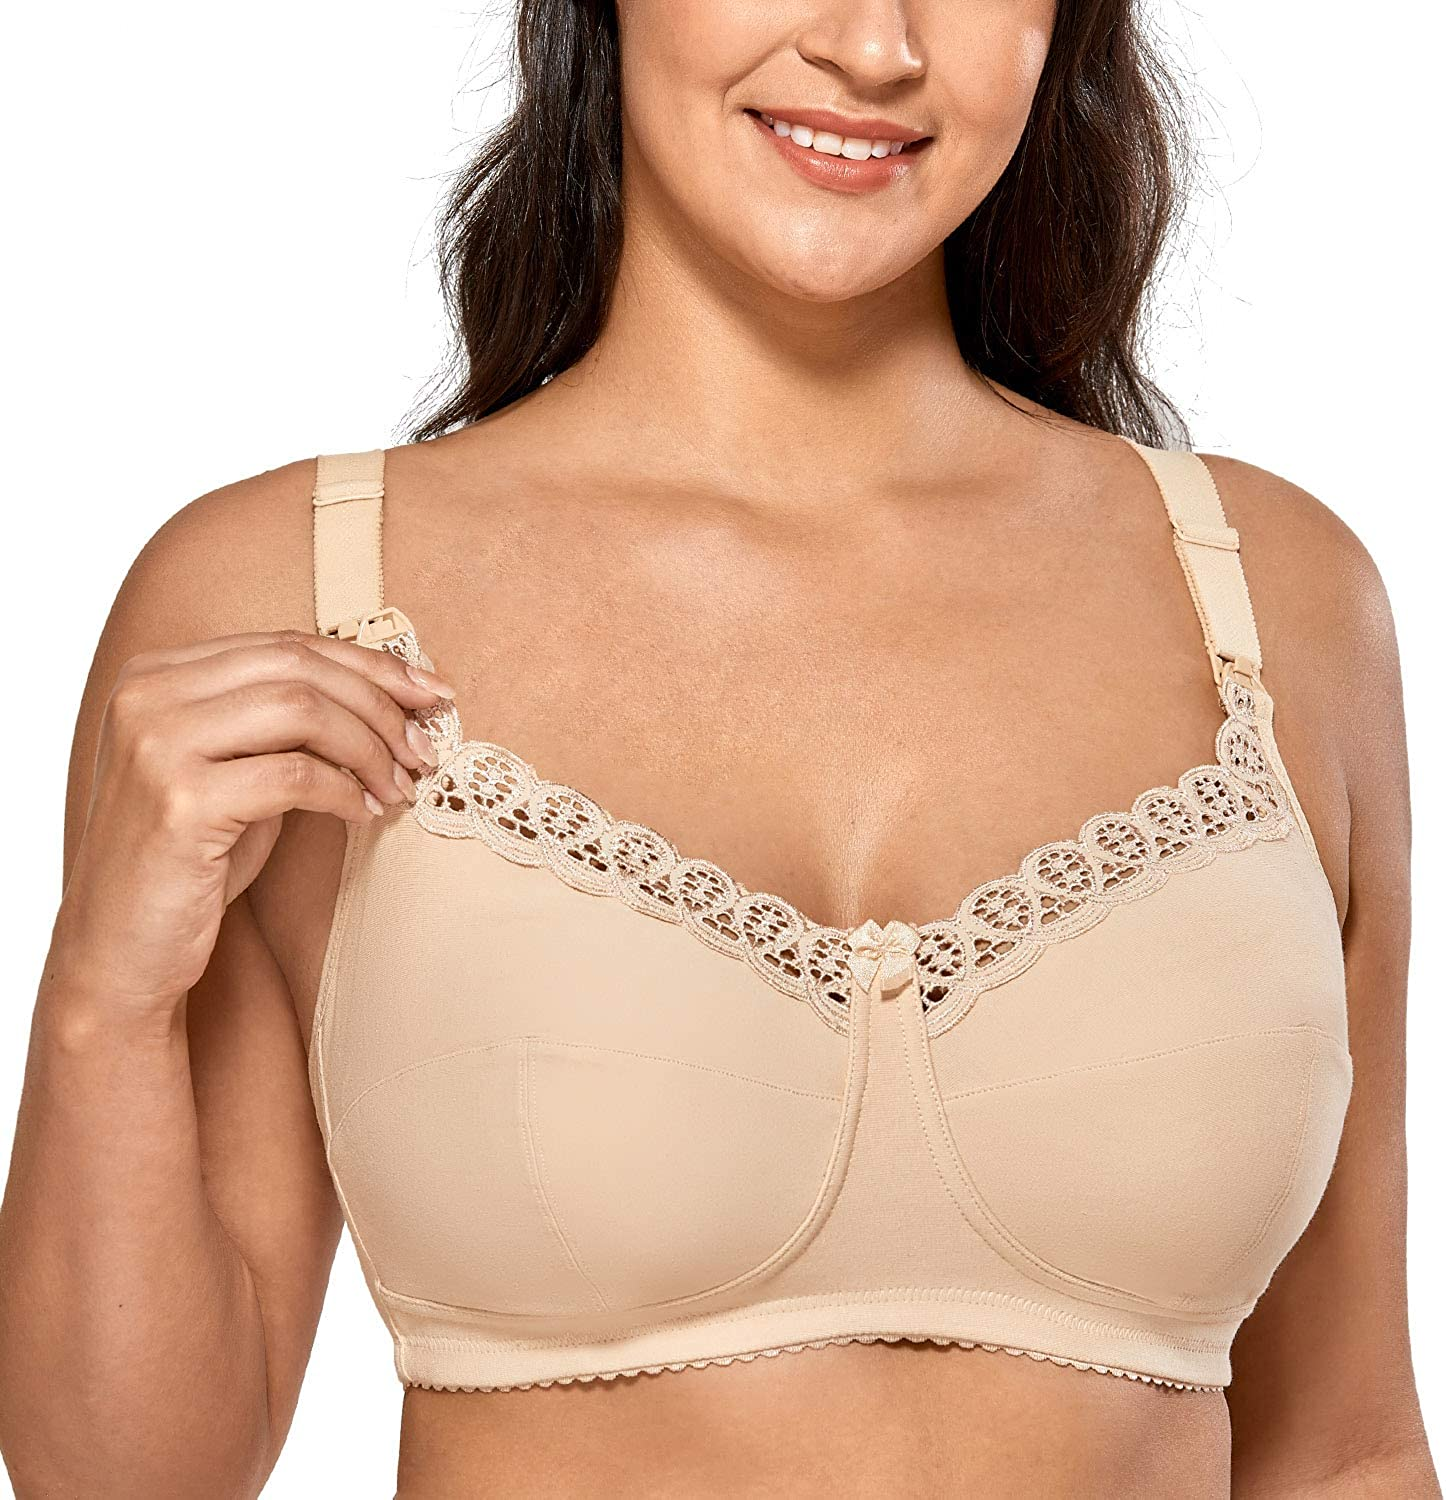 Gratlin Womens Cotton Wirefree Soft Maternity Nursing Bra with Lace Trim